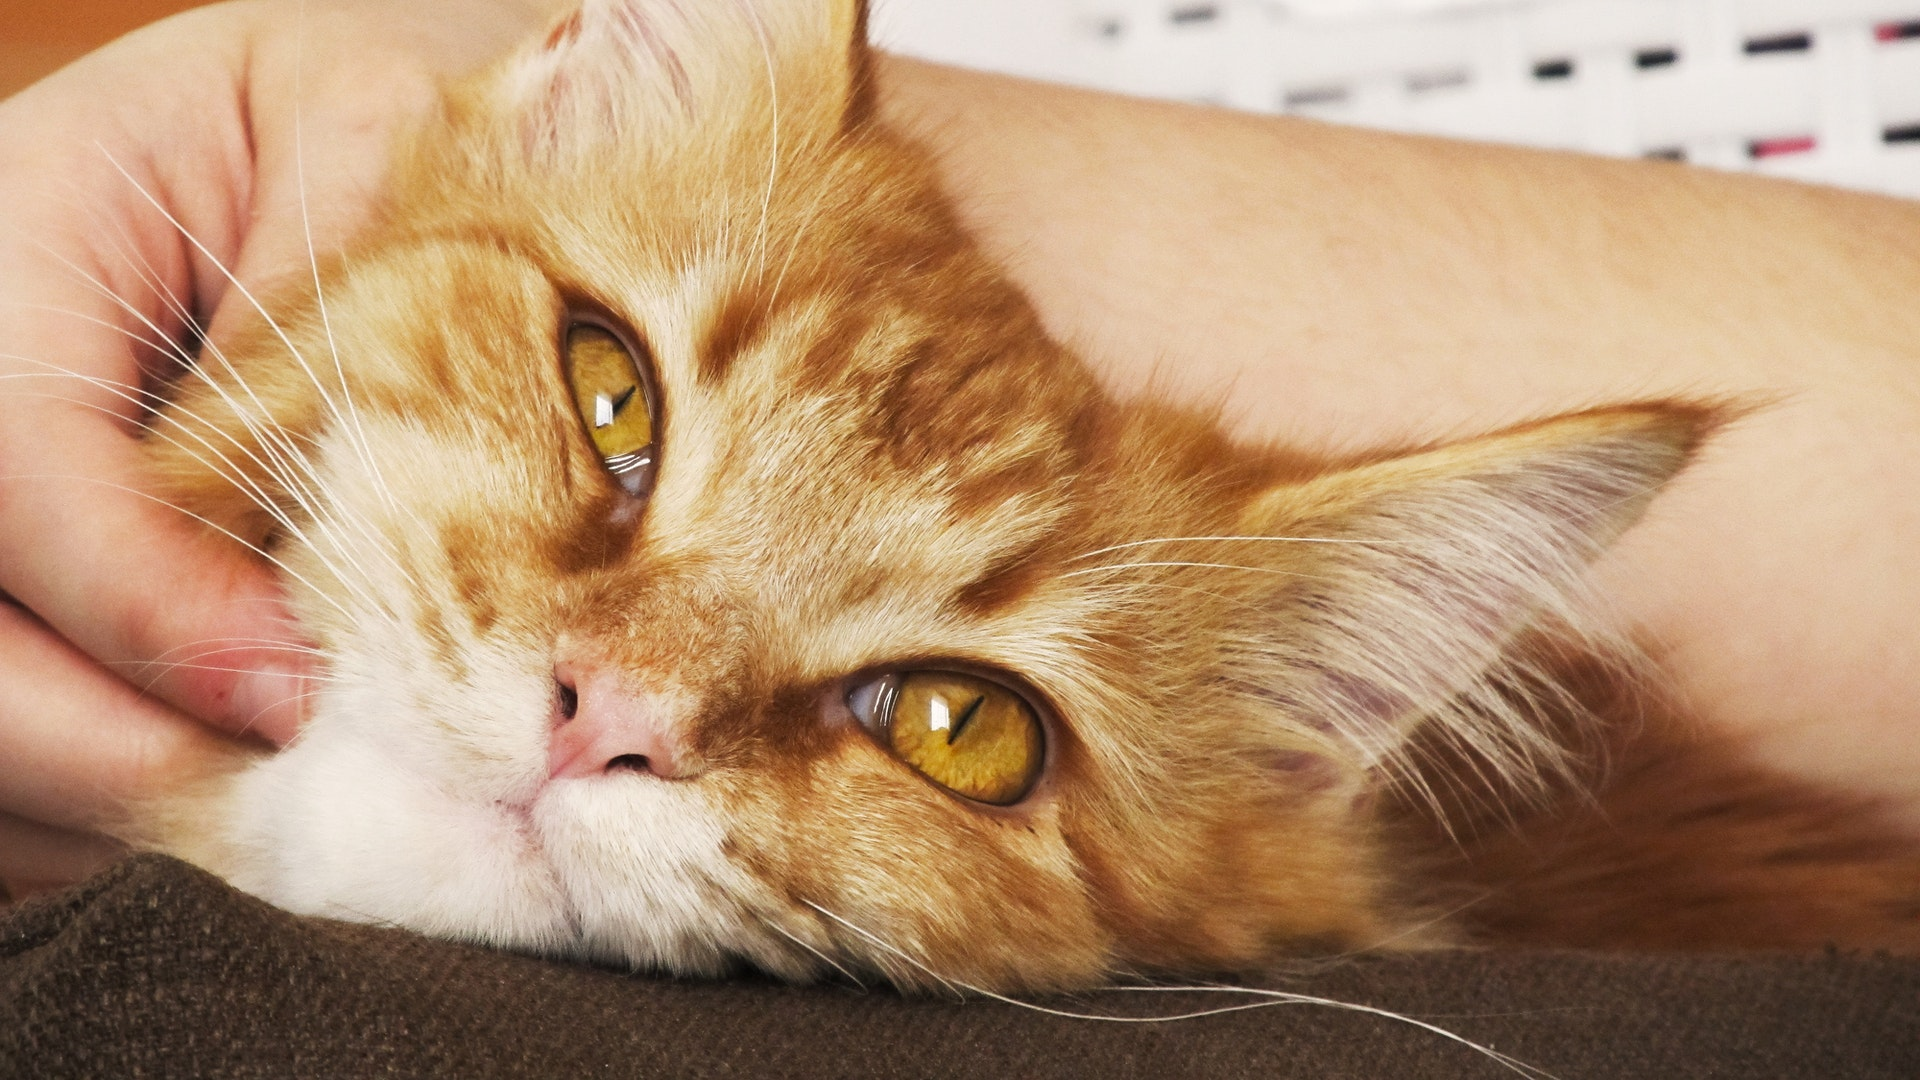 What Is Buprenorphine for Cats?